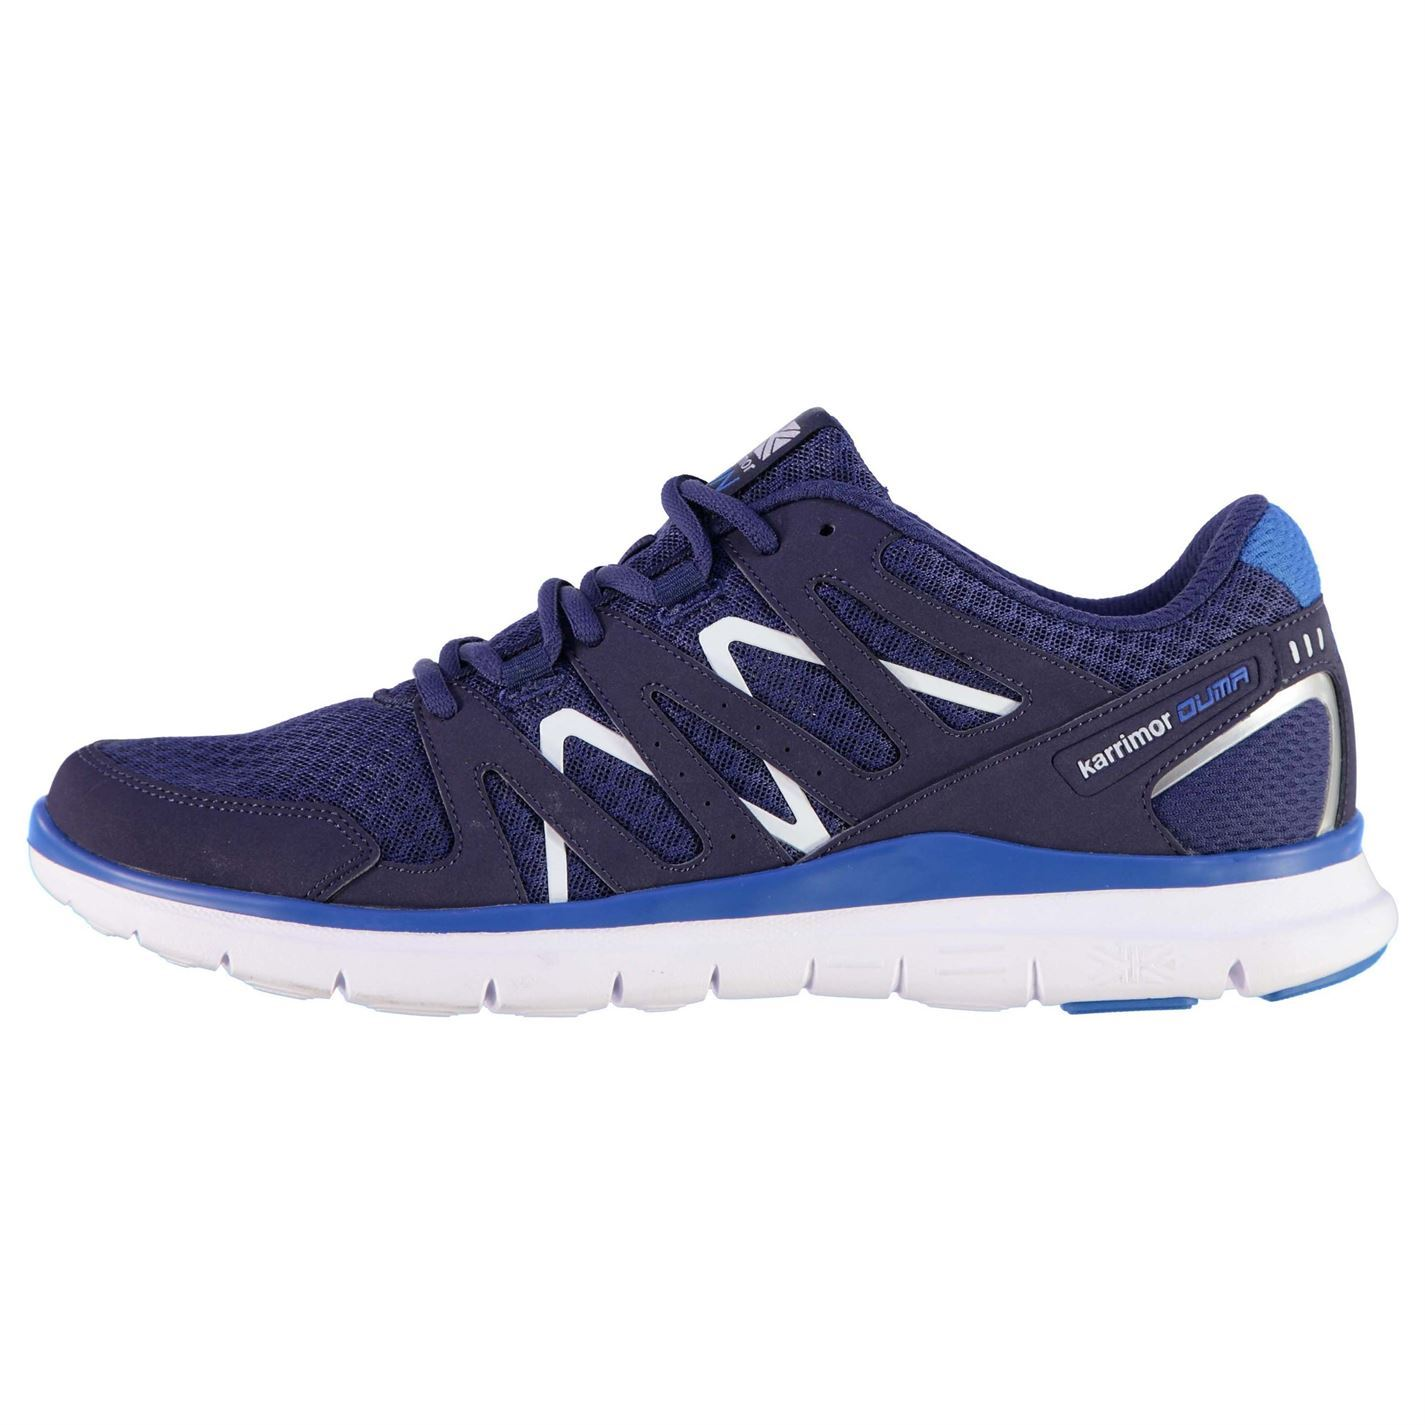 check out 39804 8d57f Details about Karrimor Duma Running Shoes Mens Navy/Blue Trainers Sneakers  Sports Shoes